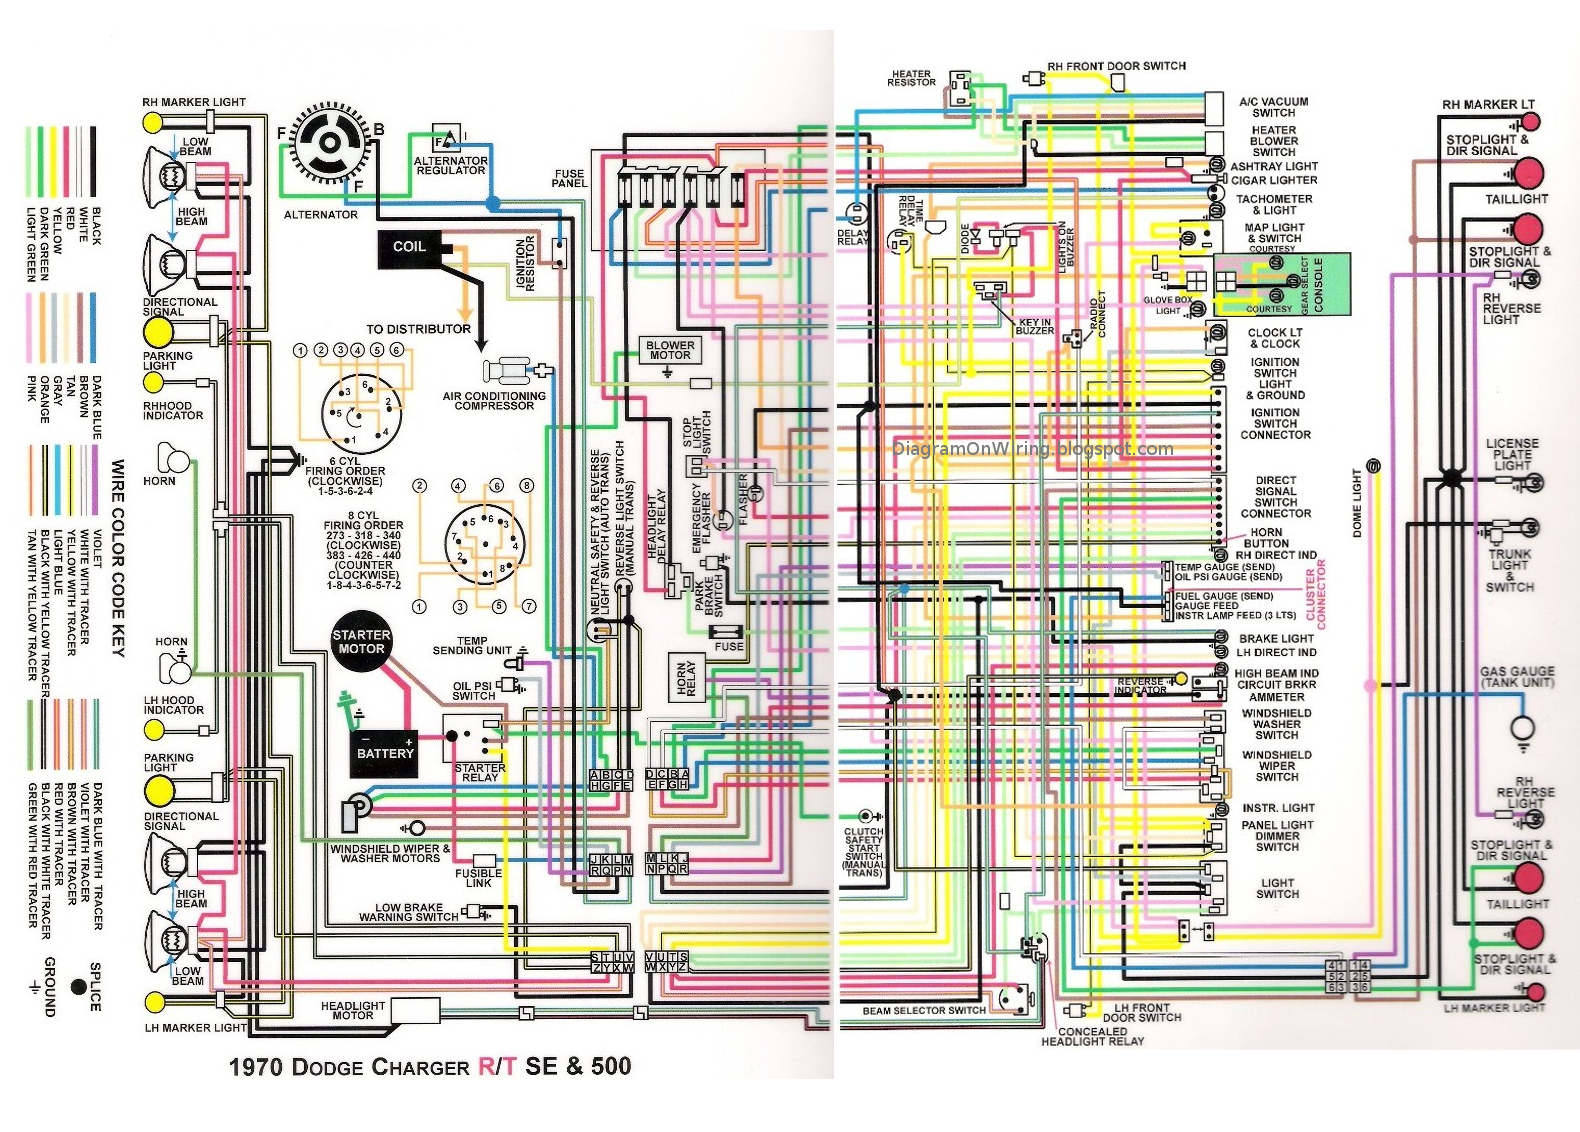 Complete Wiring Diagram For Dodge Charger Rt Se And